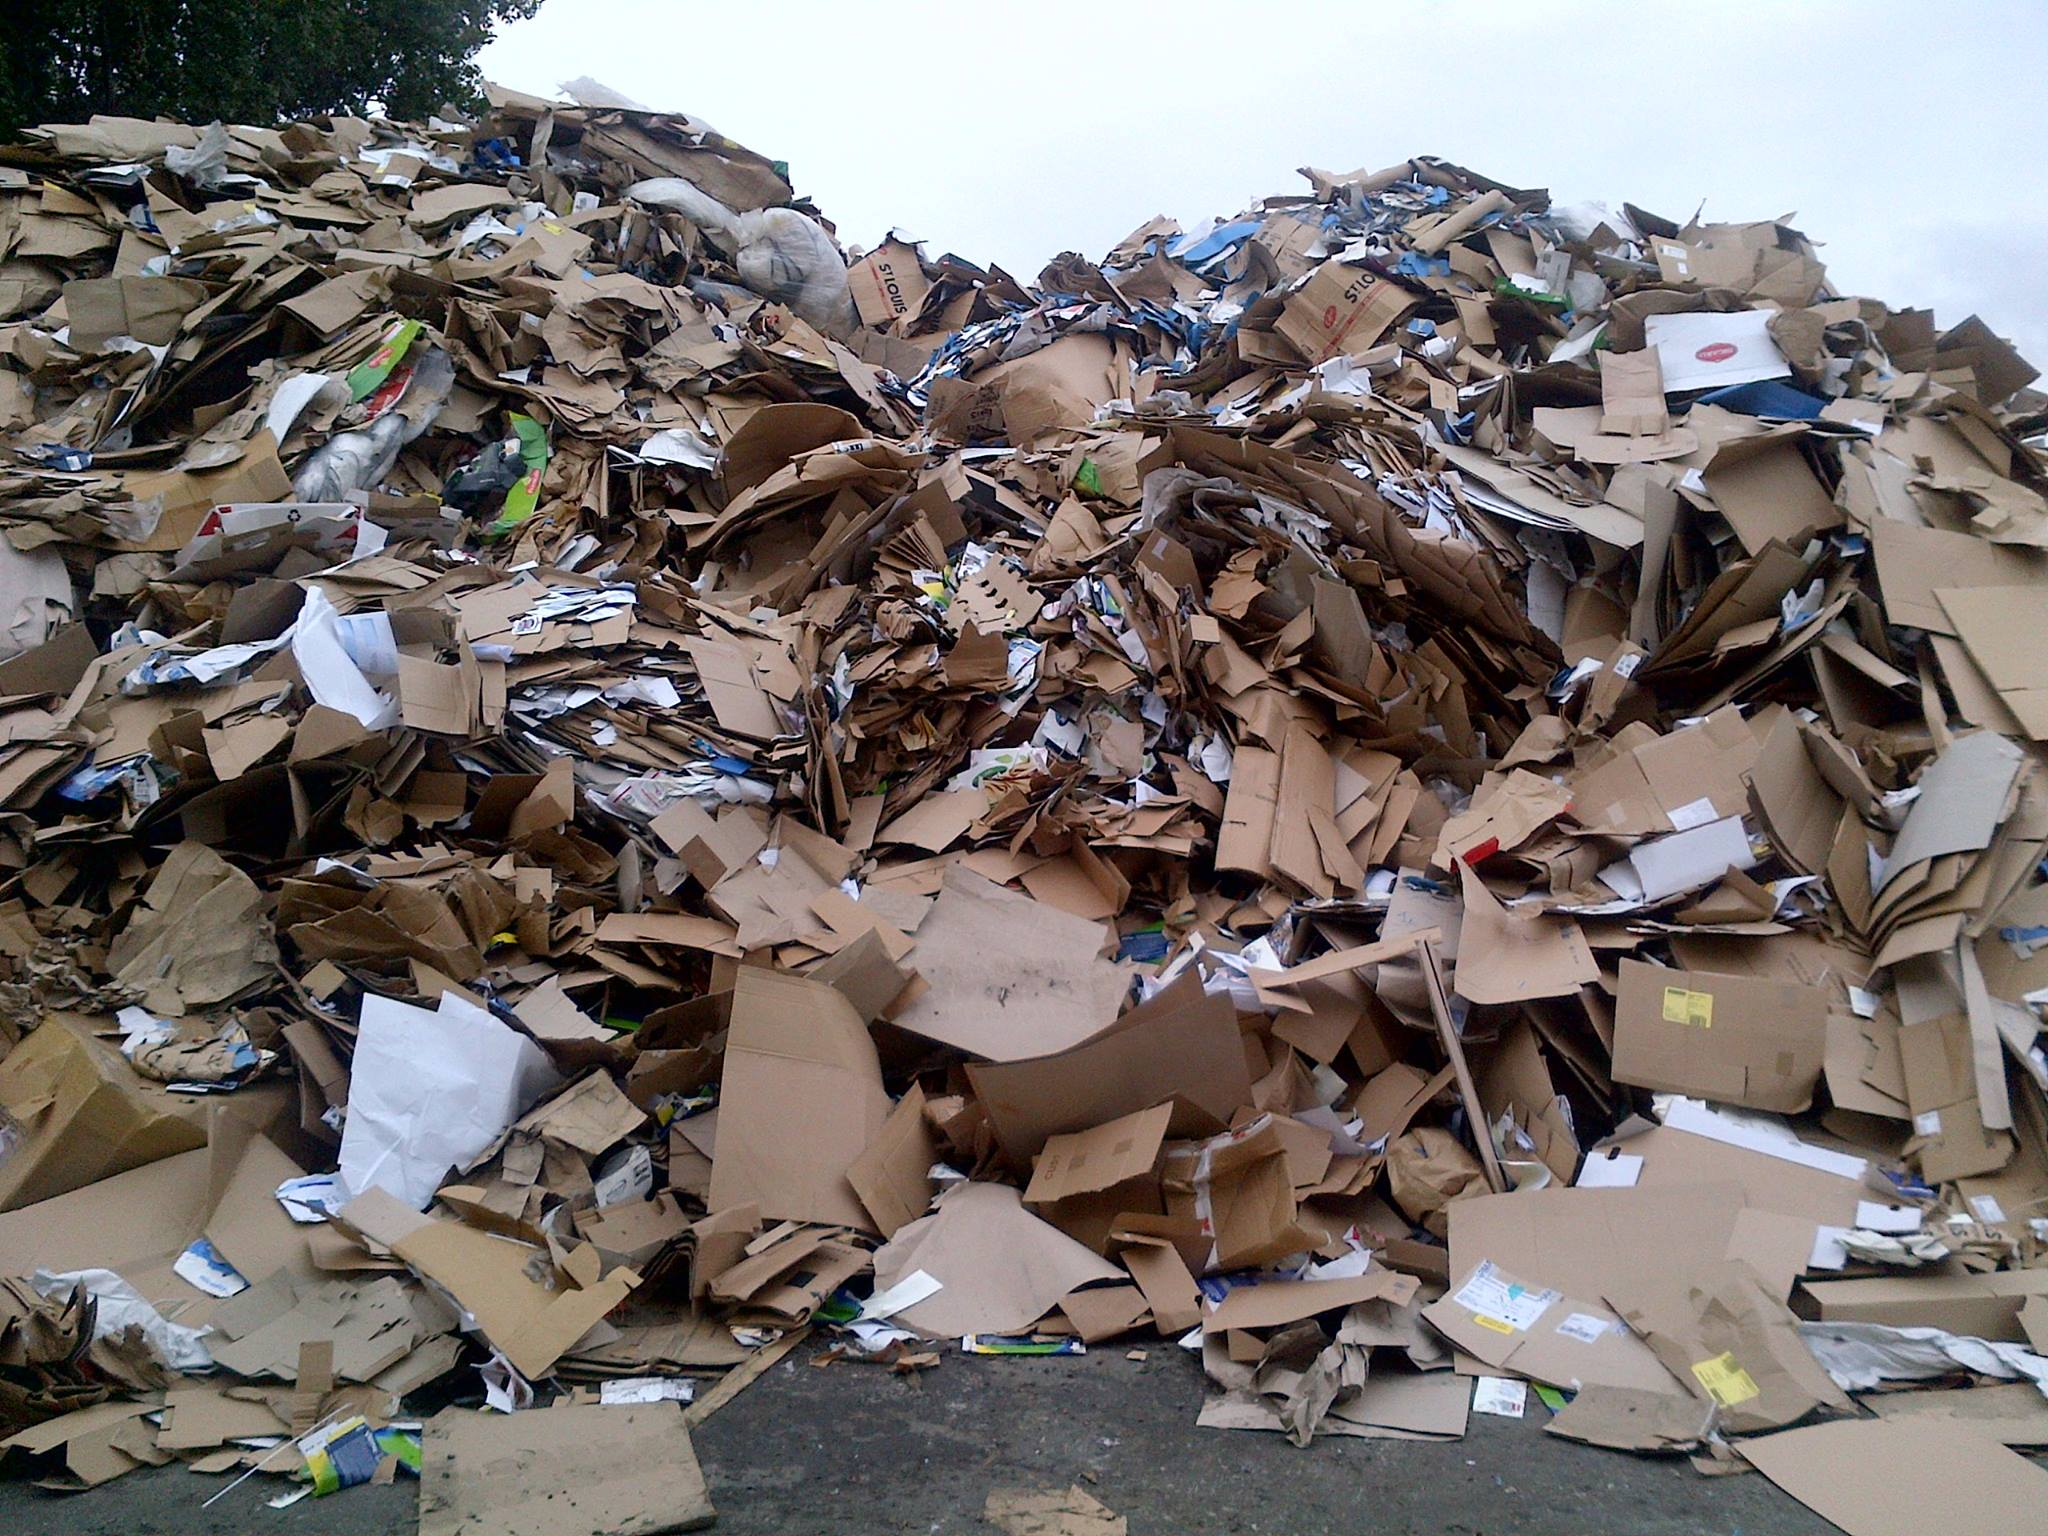 paper waste The wholesale division of paper source shop for bulk paper, envelopes, gifts, stationery, cards, gift wrap, gift bags, ribbons and other paper products.